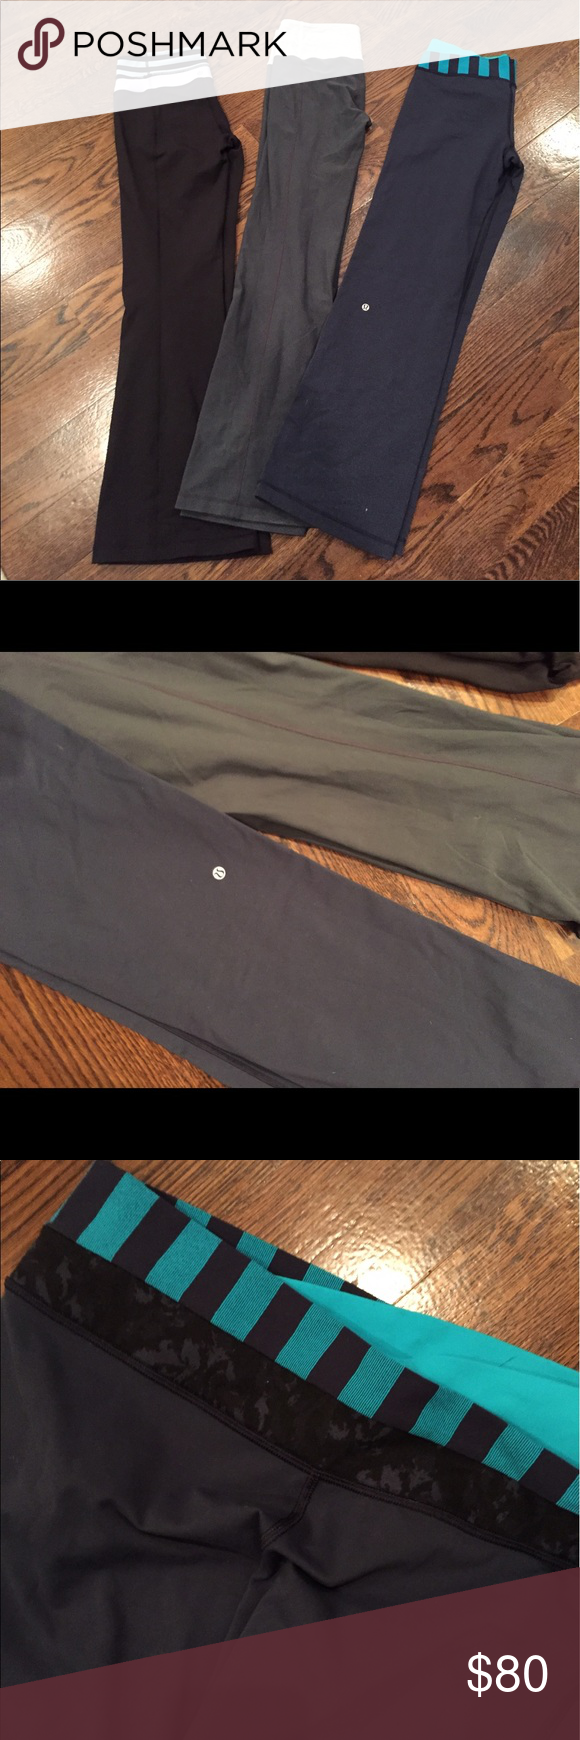 LULULEMON Lot! Groove pants reversible LULULEMON Lot! Groove pants reversible. 2 pairs reversible (size 8) pair size 10. Gray has slight piling, others are like new! lululemon athletica Other